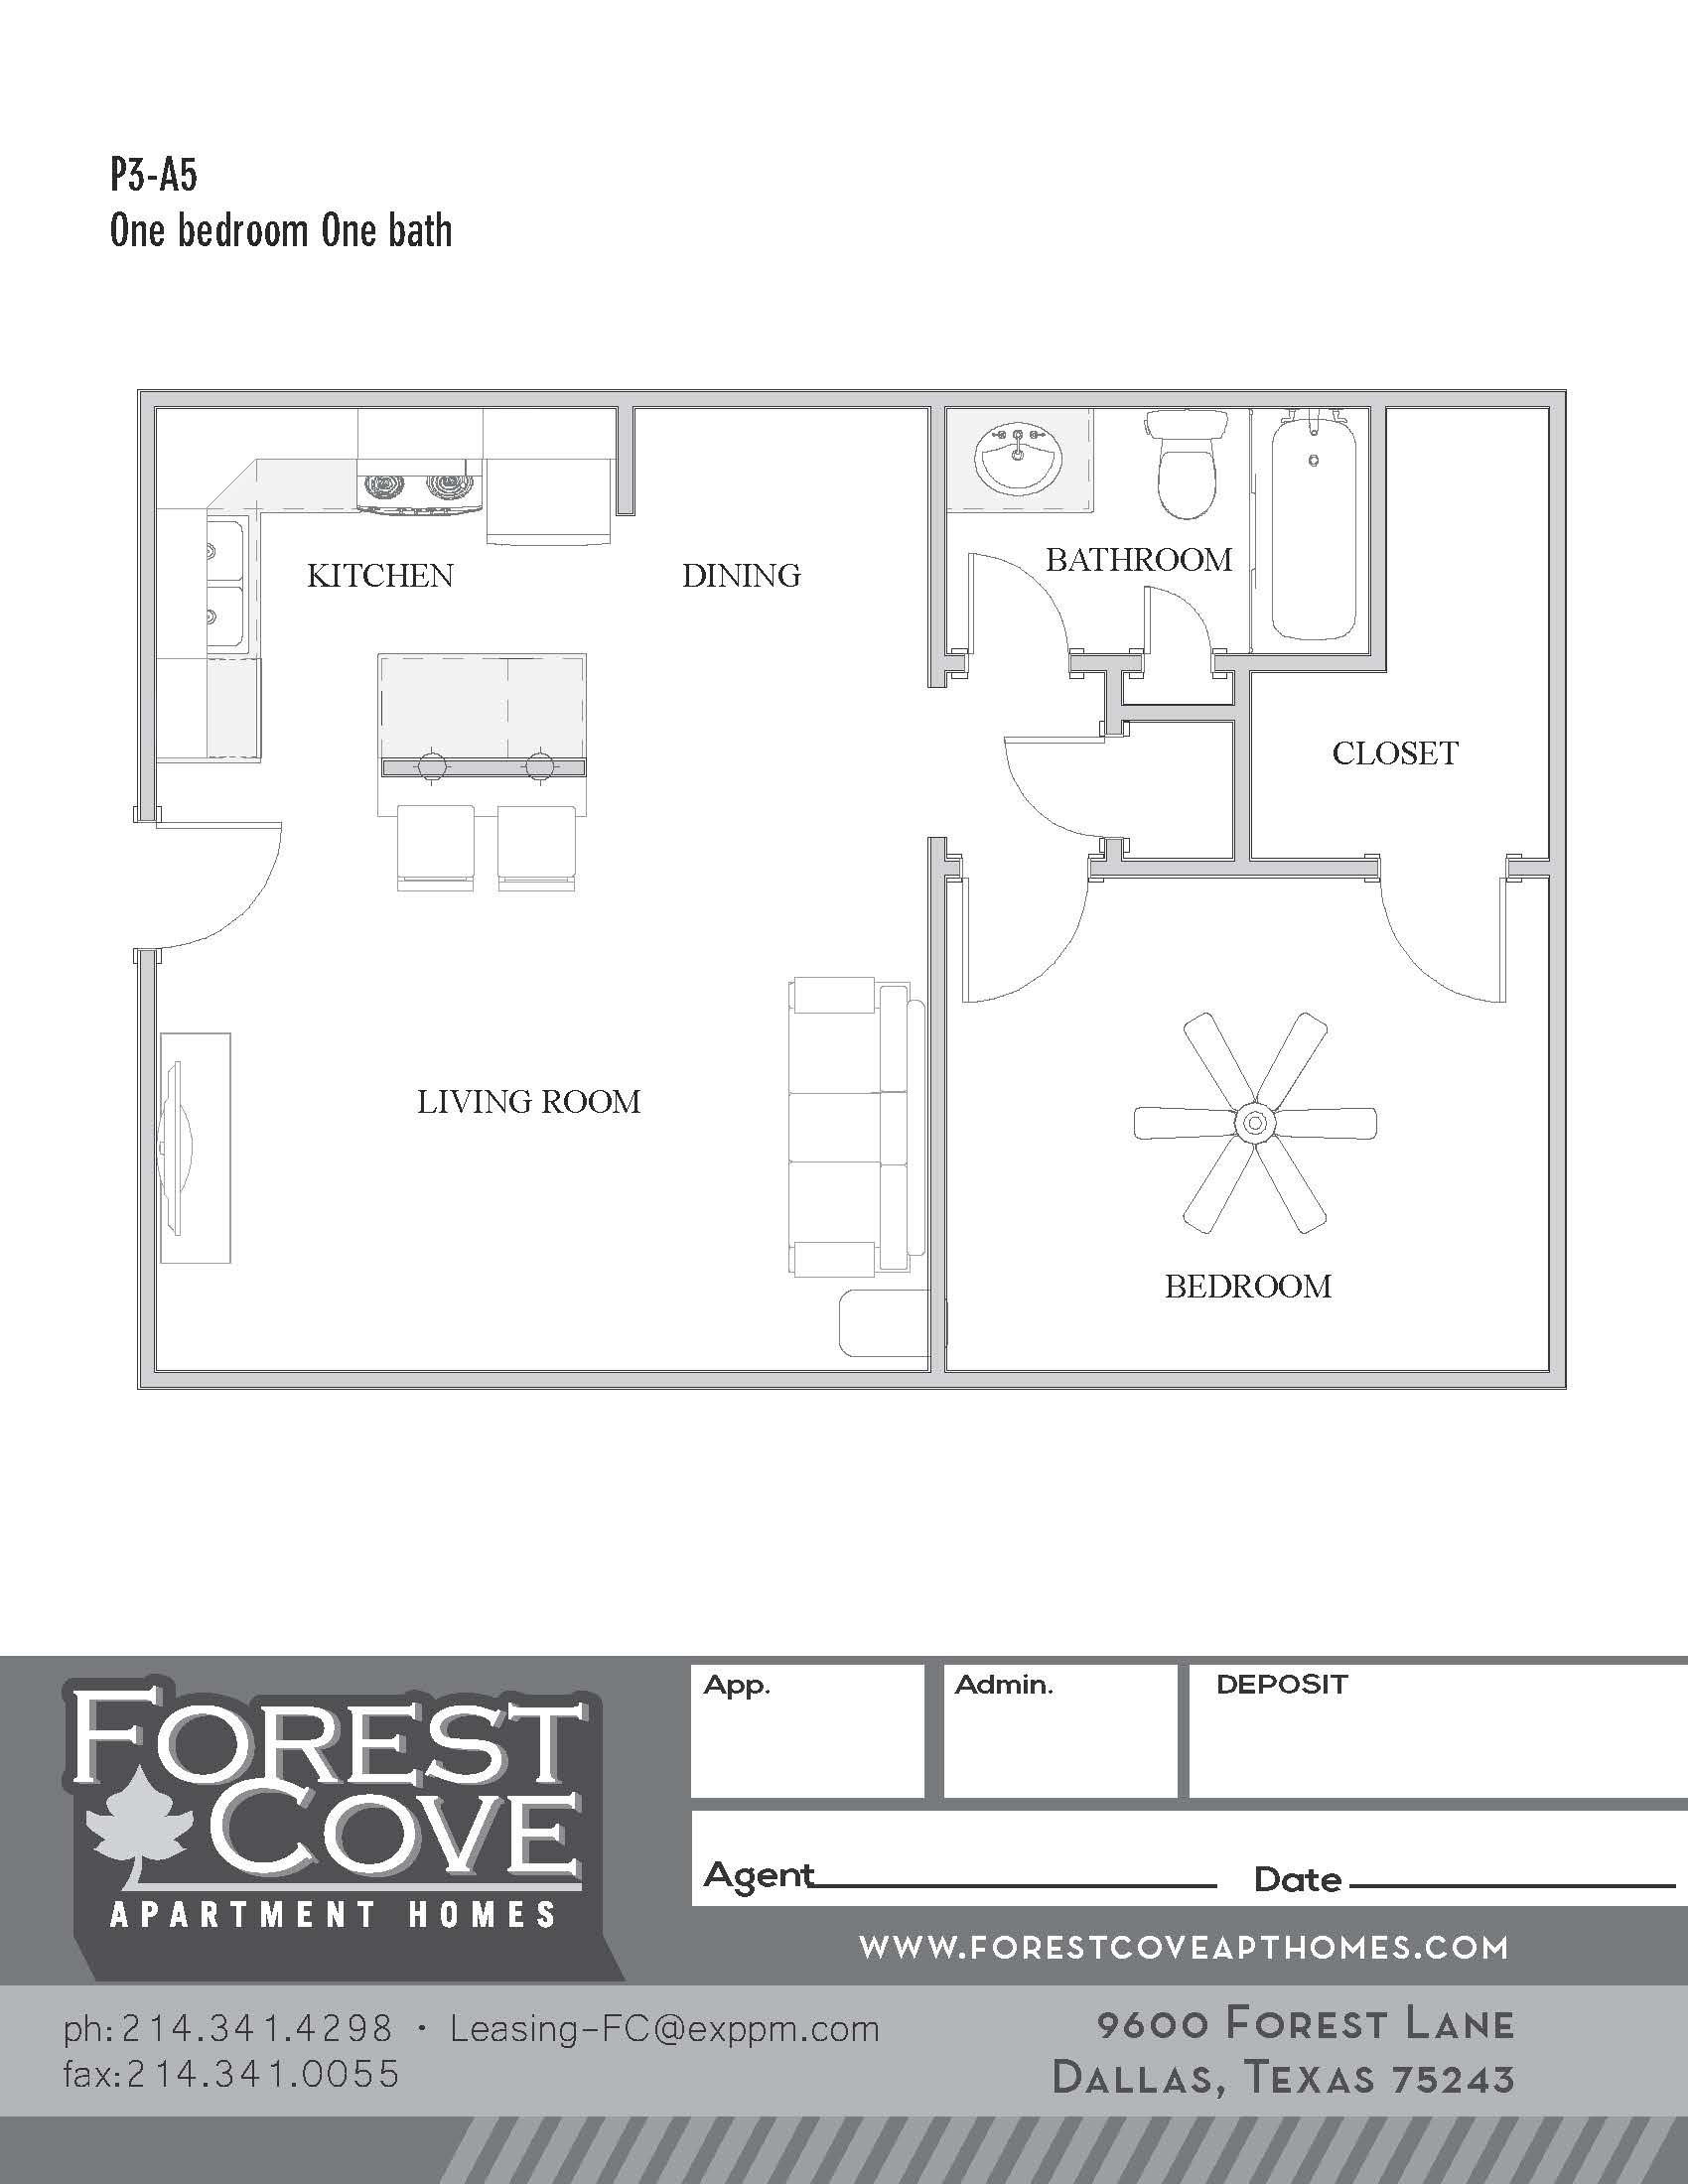 Forest Cove Apartments - Floorplan - 3-A5